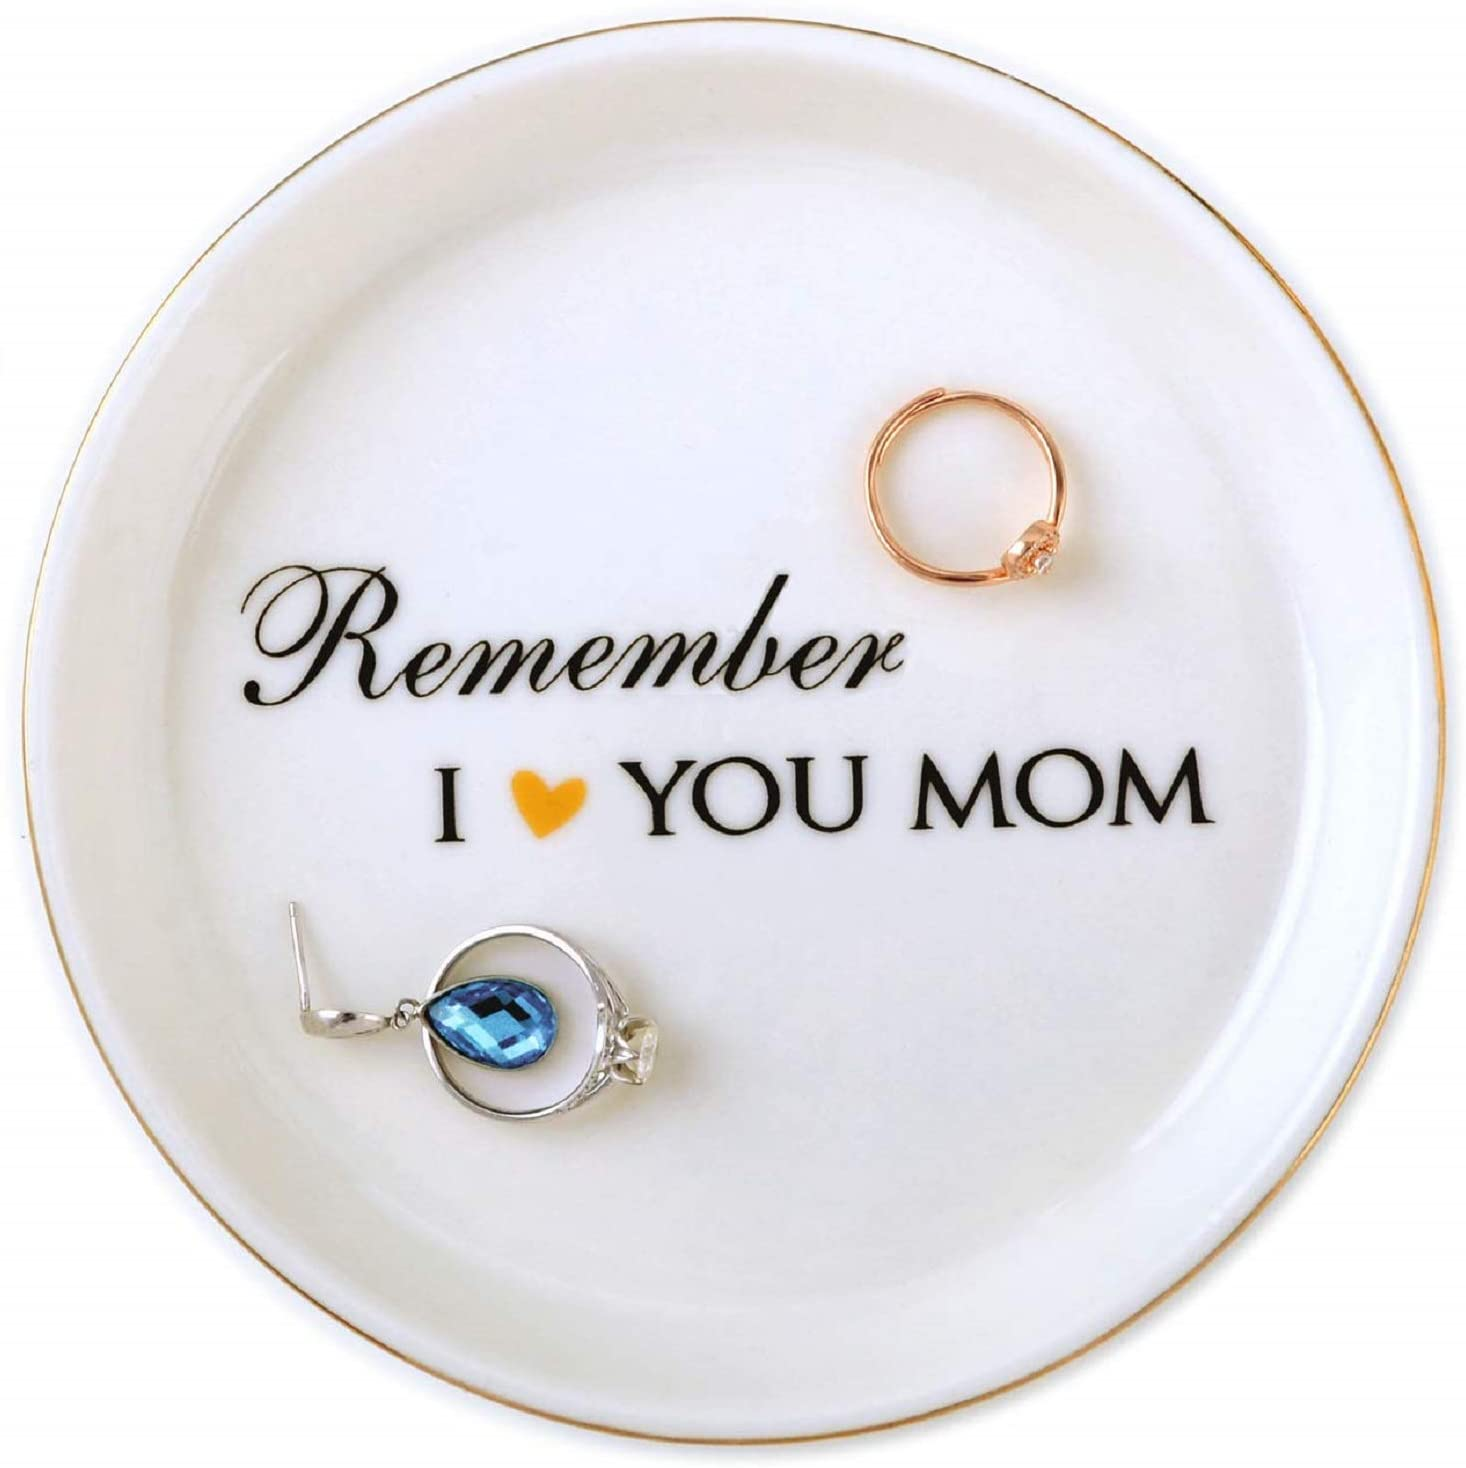 Mom Gifts Birthday Gifts Idea for Mom Mother in Law from Daughter Son Wife Bride, Remember I Love You Mom Ceramic Jewelry Tray Trinket Ring Dish Home Decor, Thanksgiving Christmas Mother Day Valentine